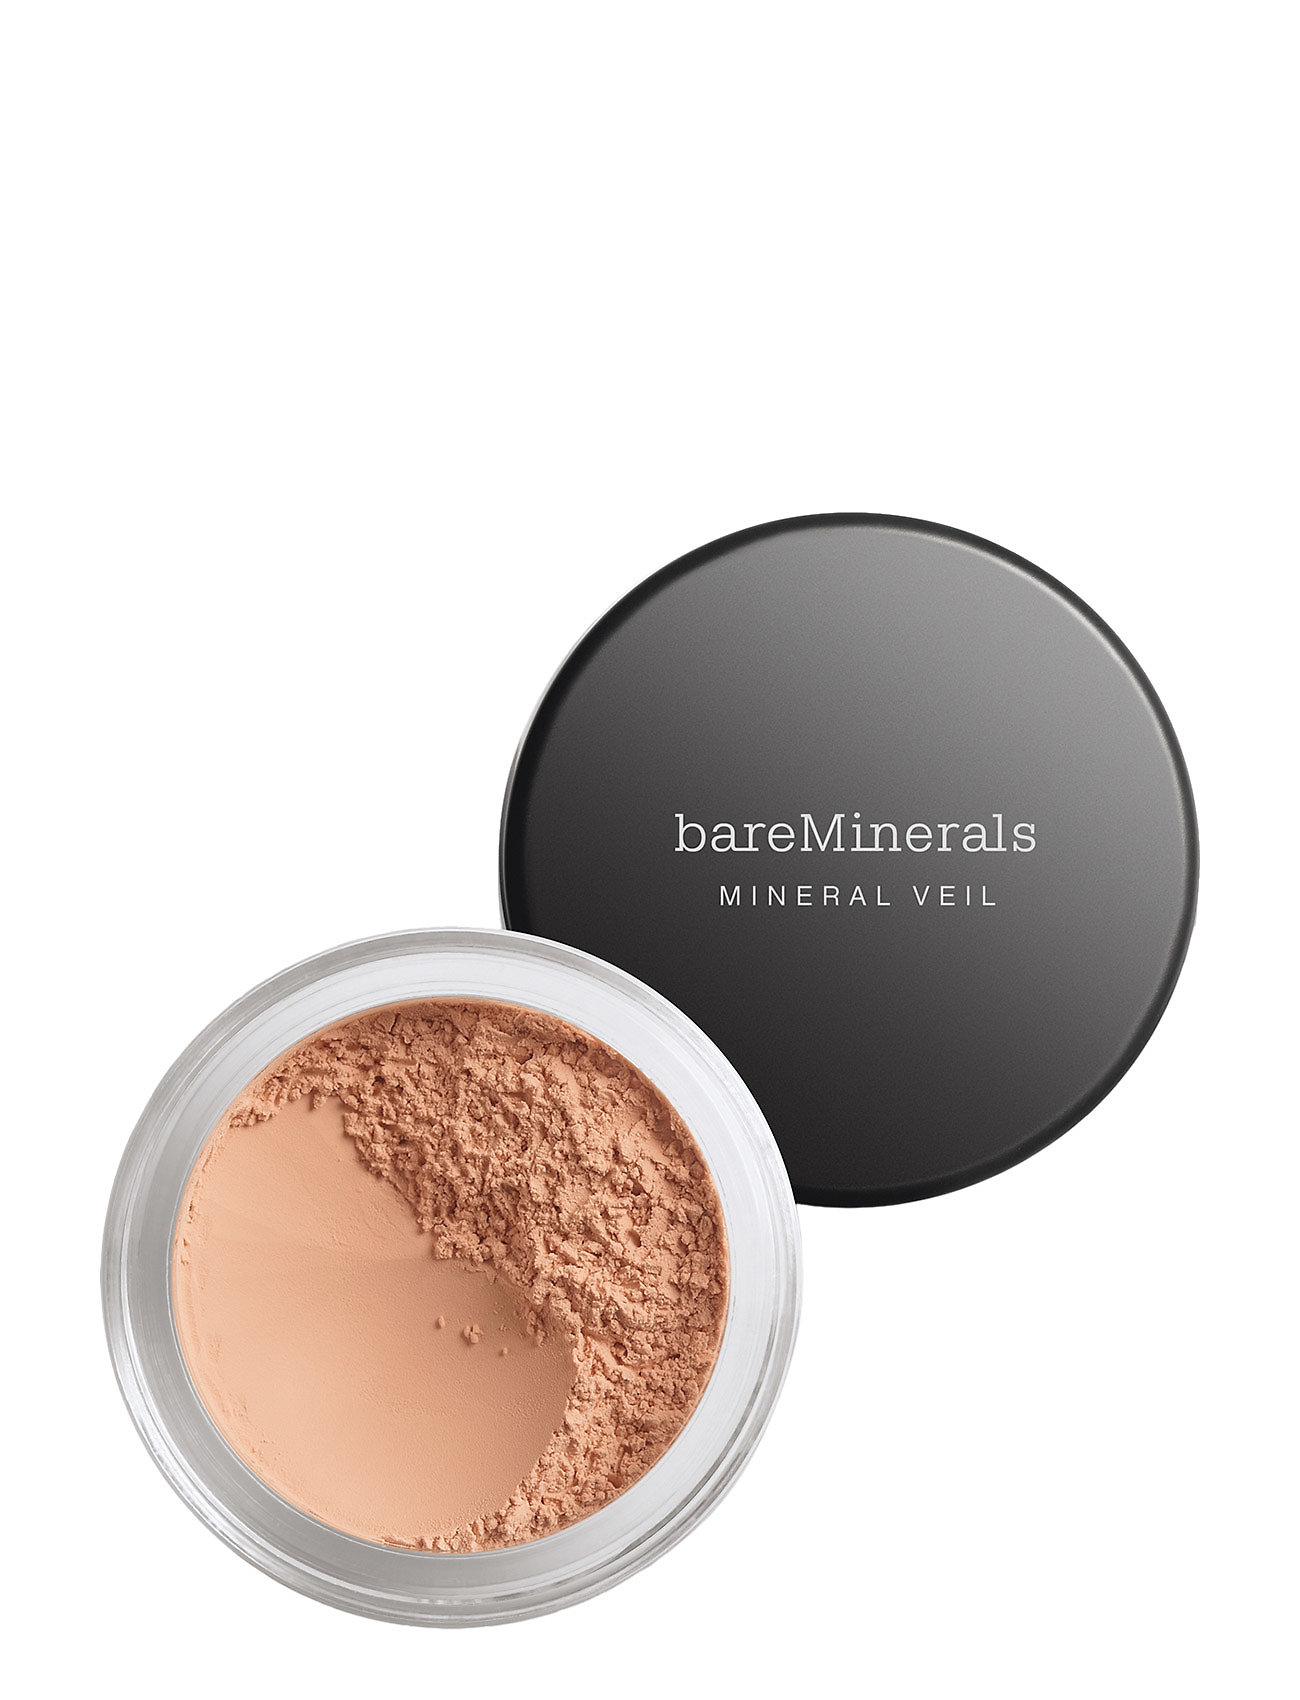 Image of Tinted Mineral Veil Pudder Makeup BareMinerals (3409964007)